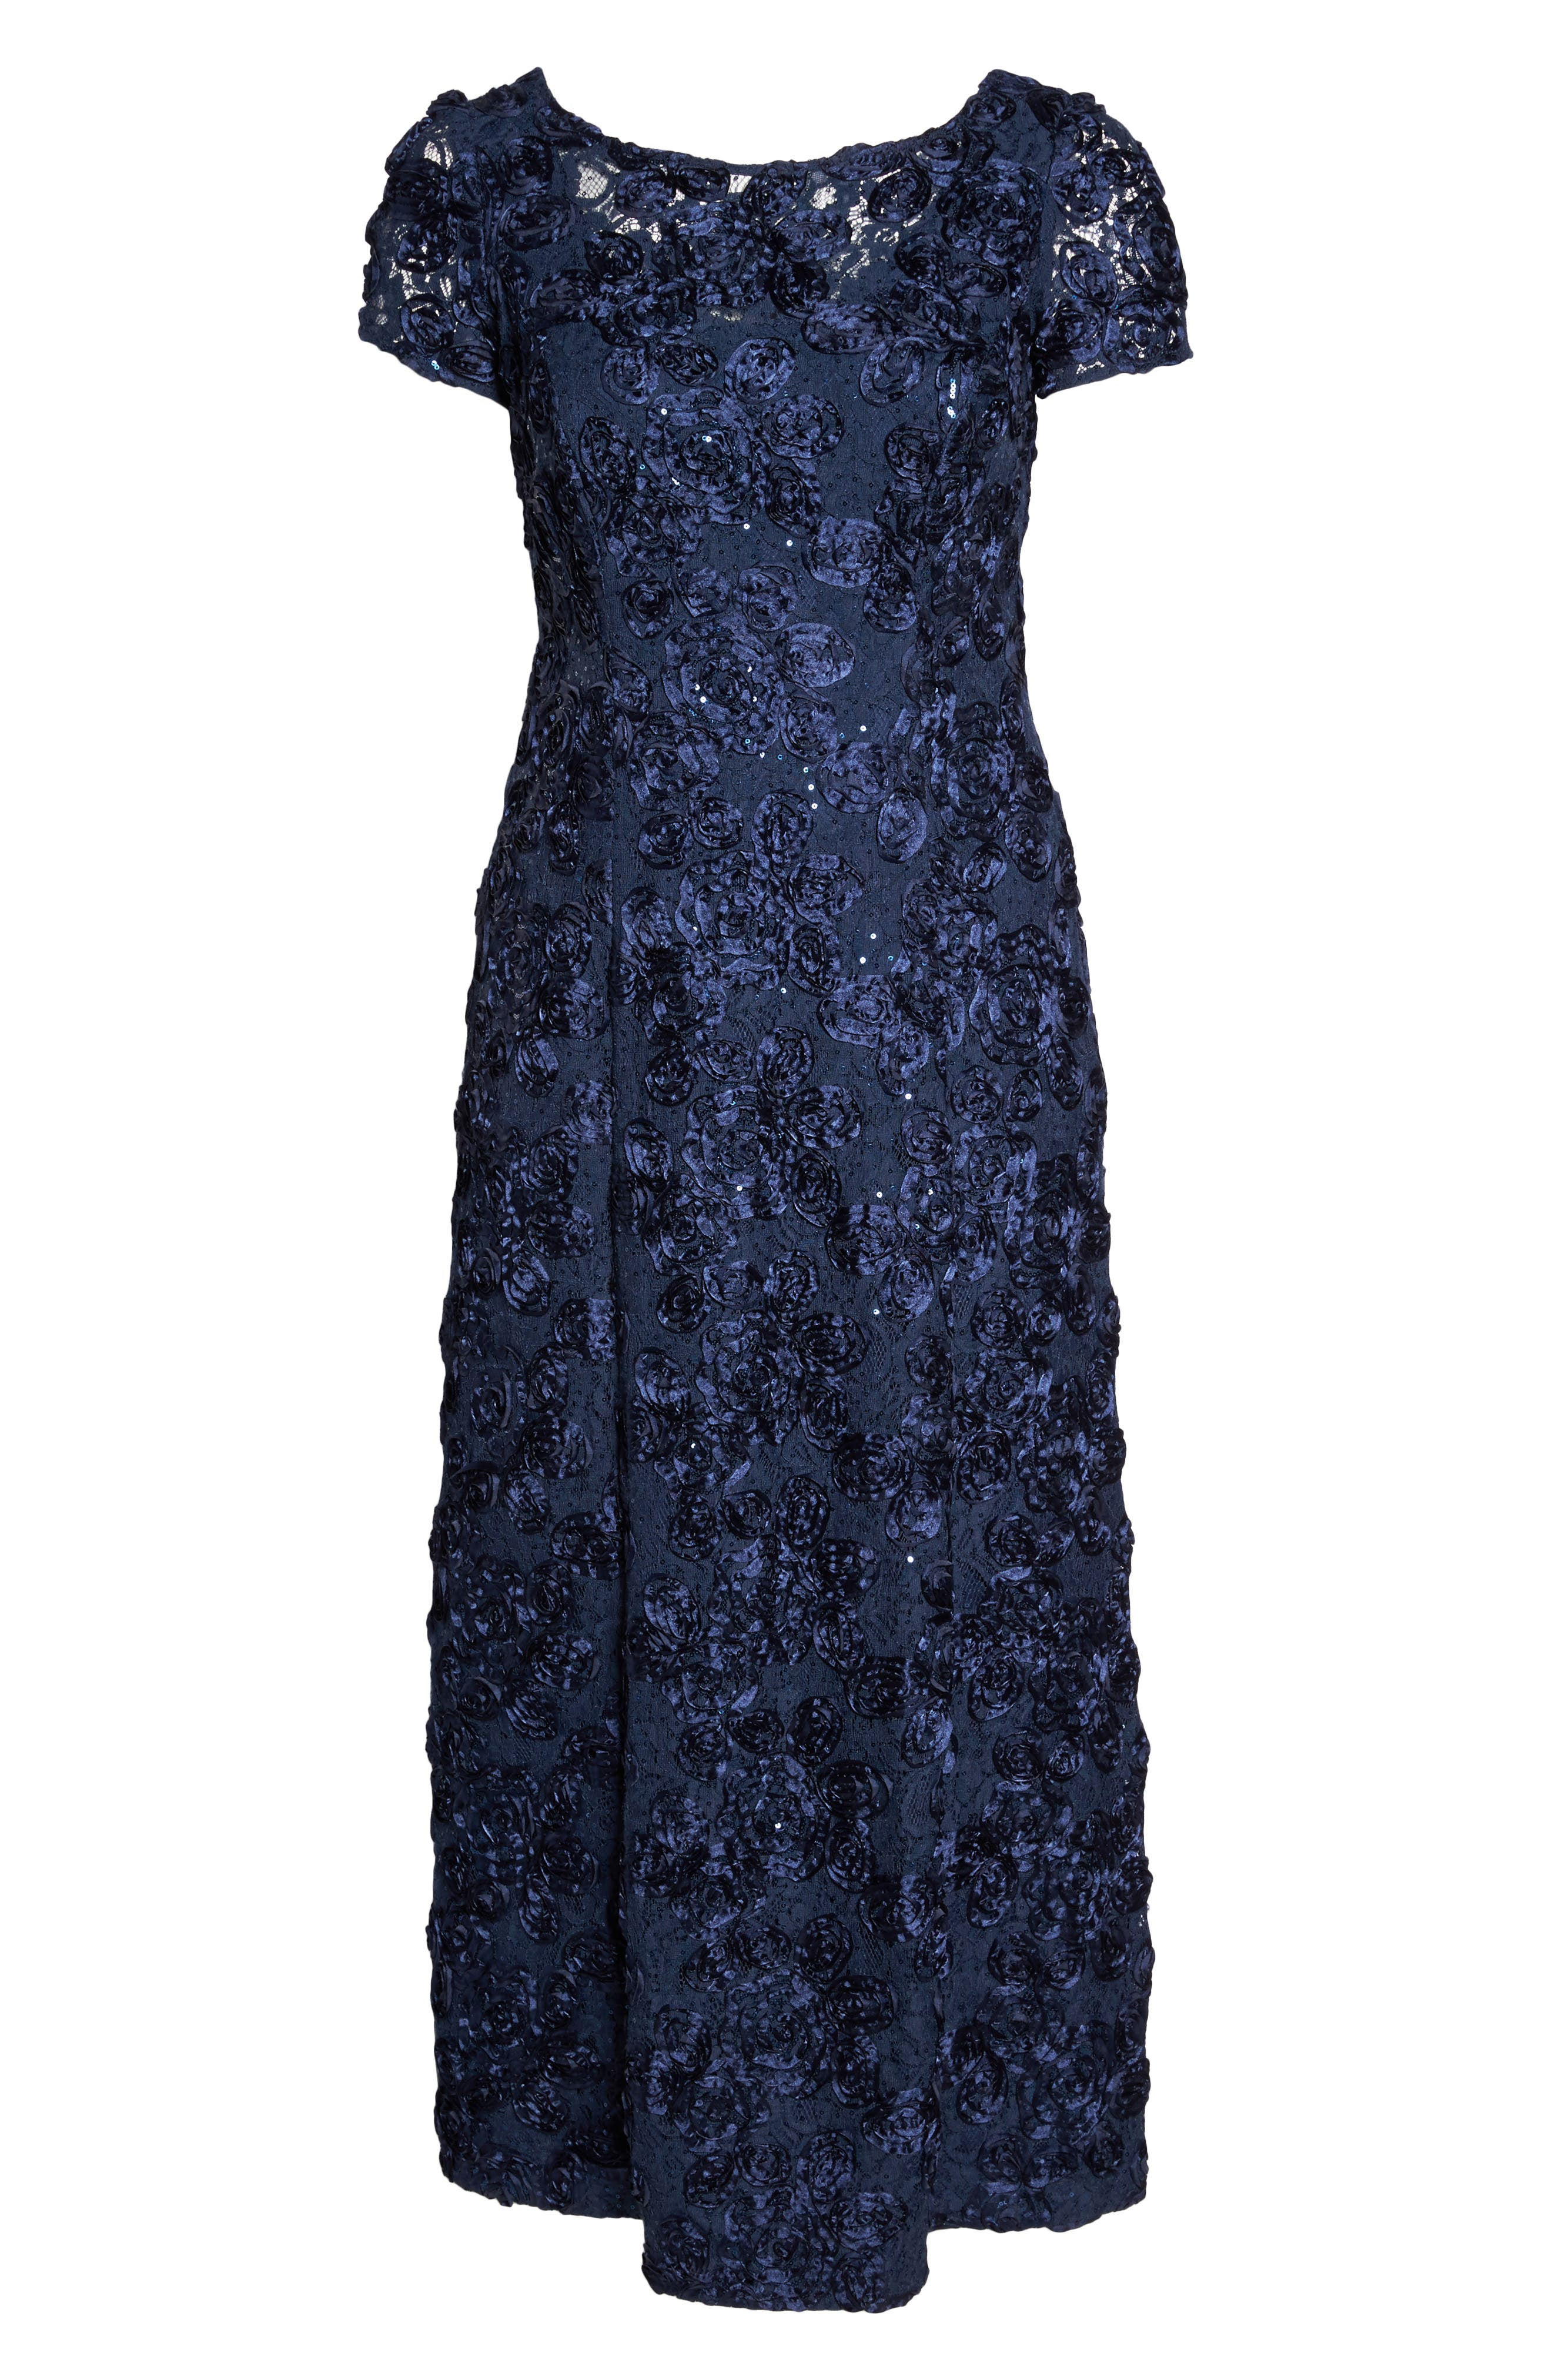 Rosette Lace Short Sleeve A-Line Gown,                             Alternate thumbnail 7, color,                             NAVY